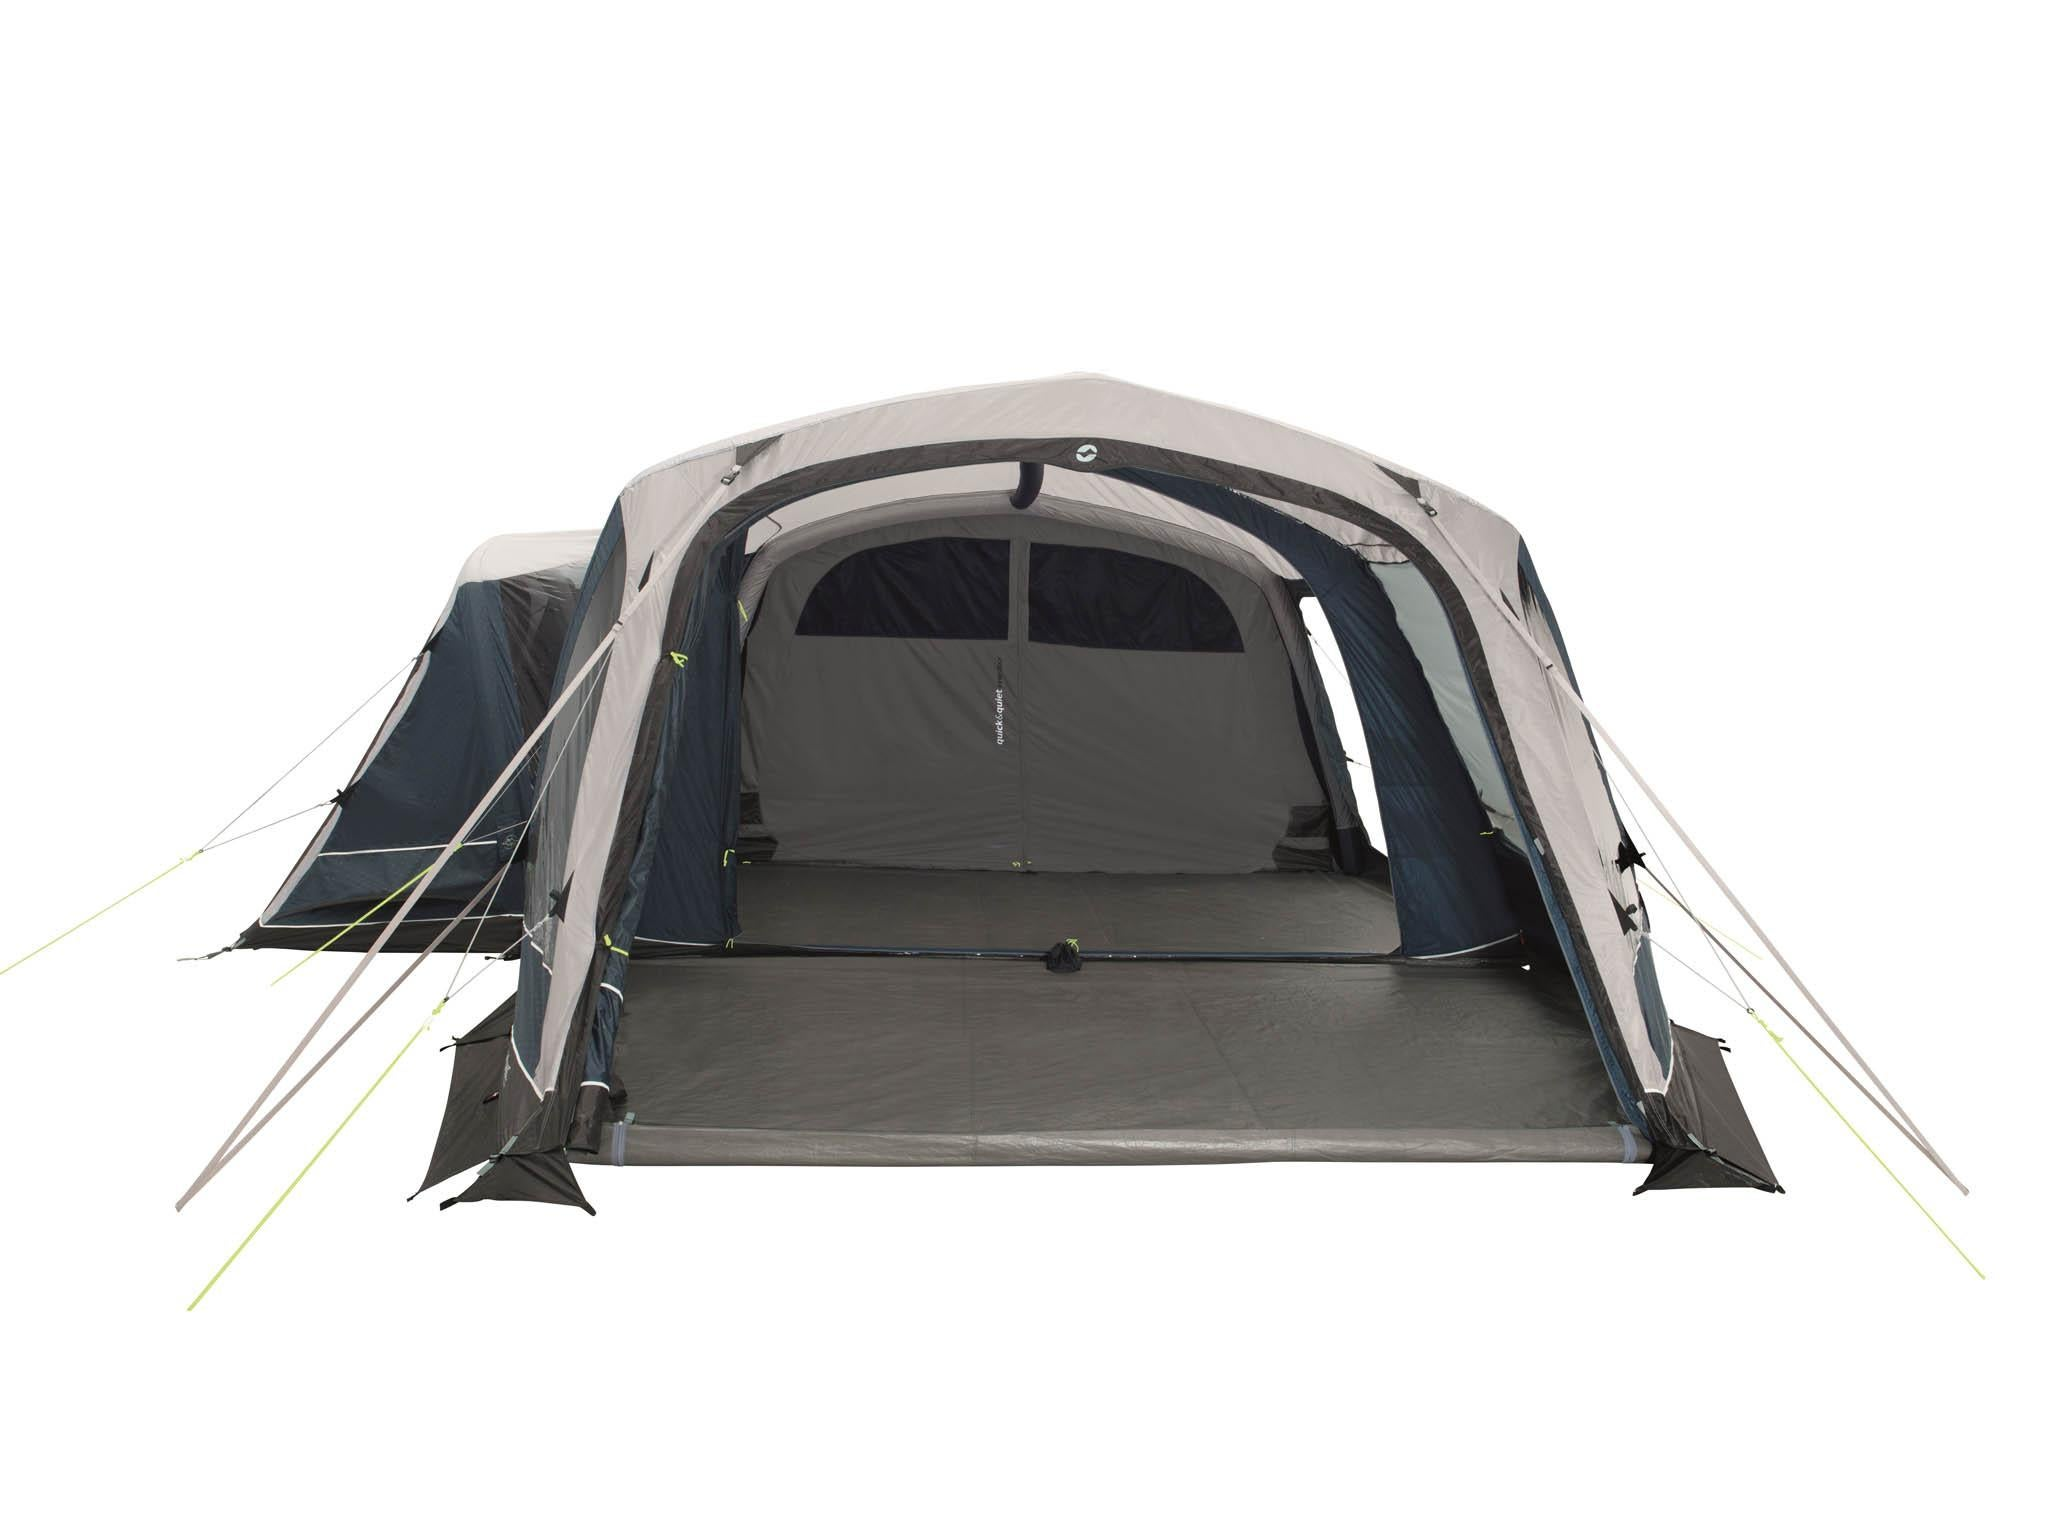 Best family tents 2020: Large